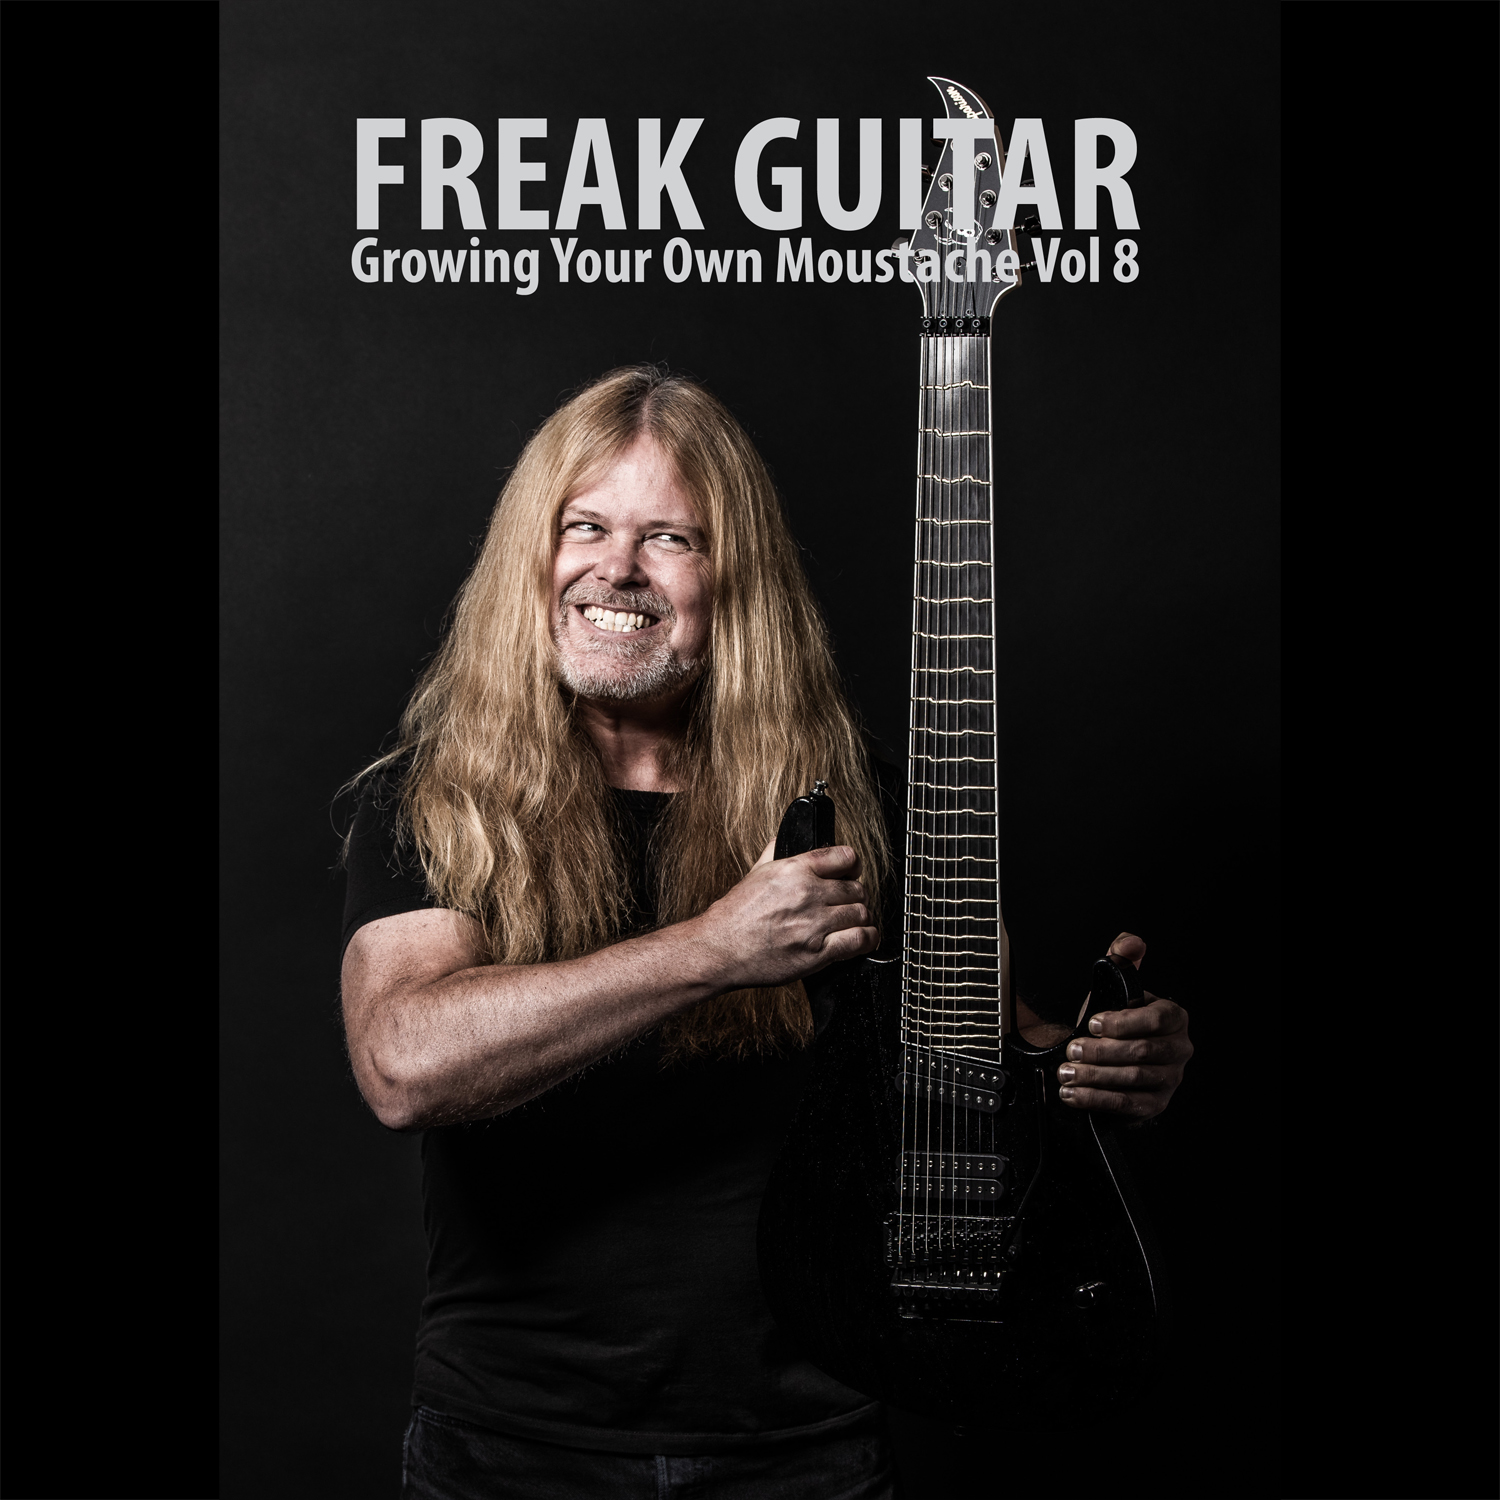 Freak Guitar - Growing Your Own Moustache Vol 8.